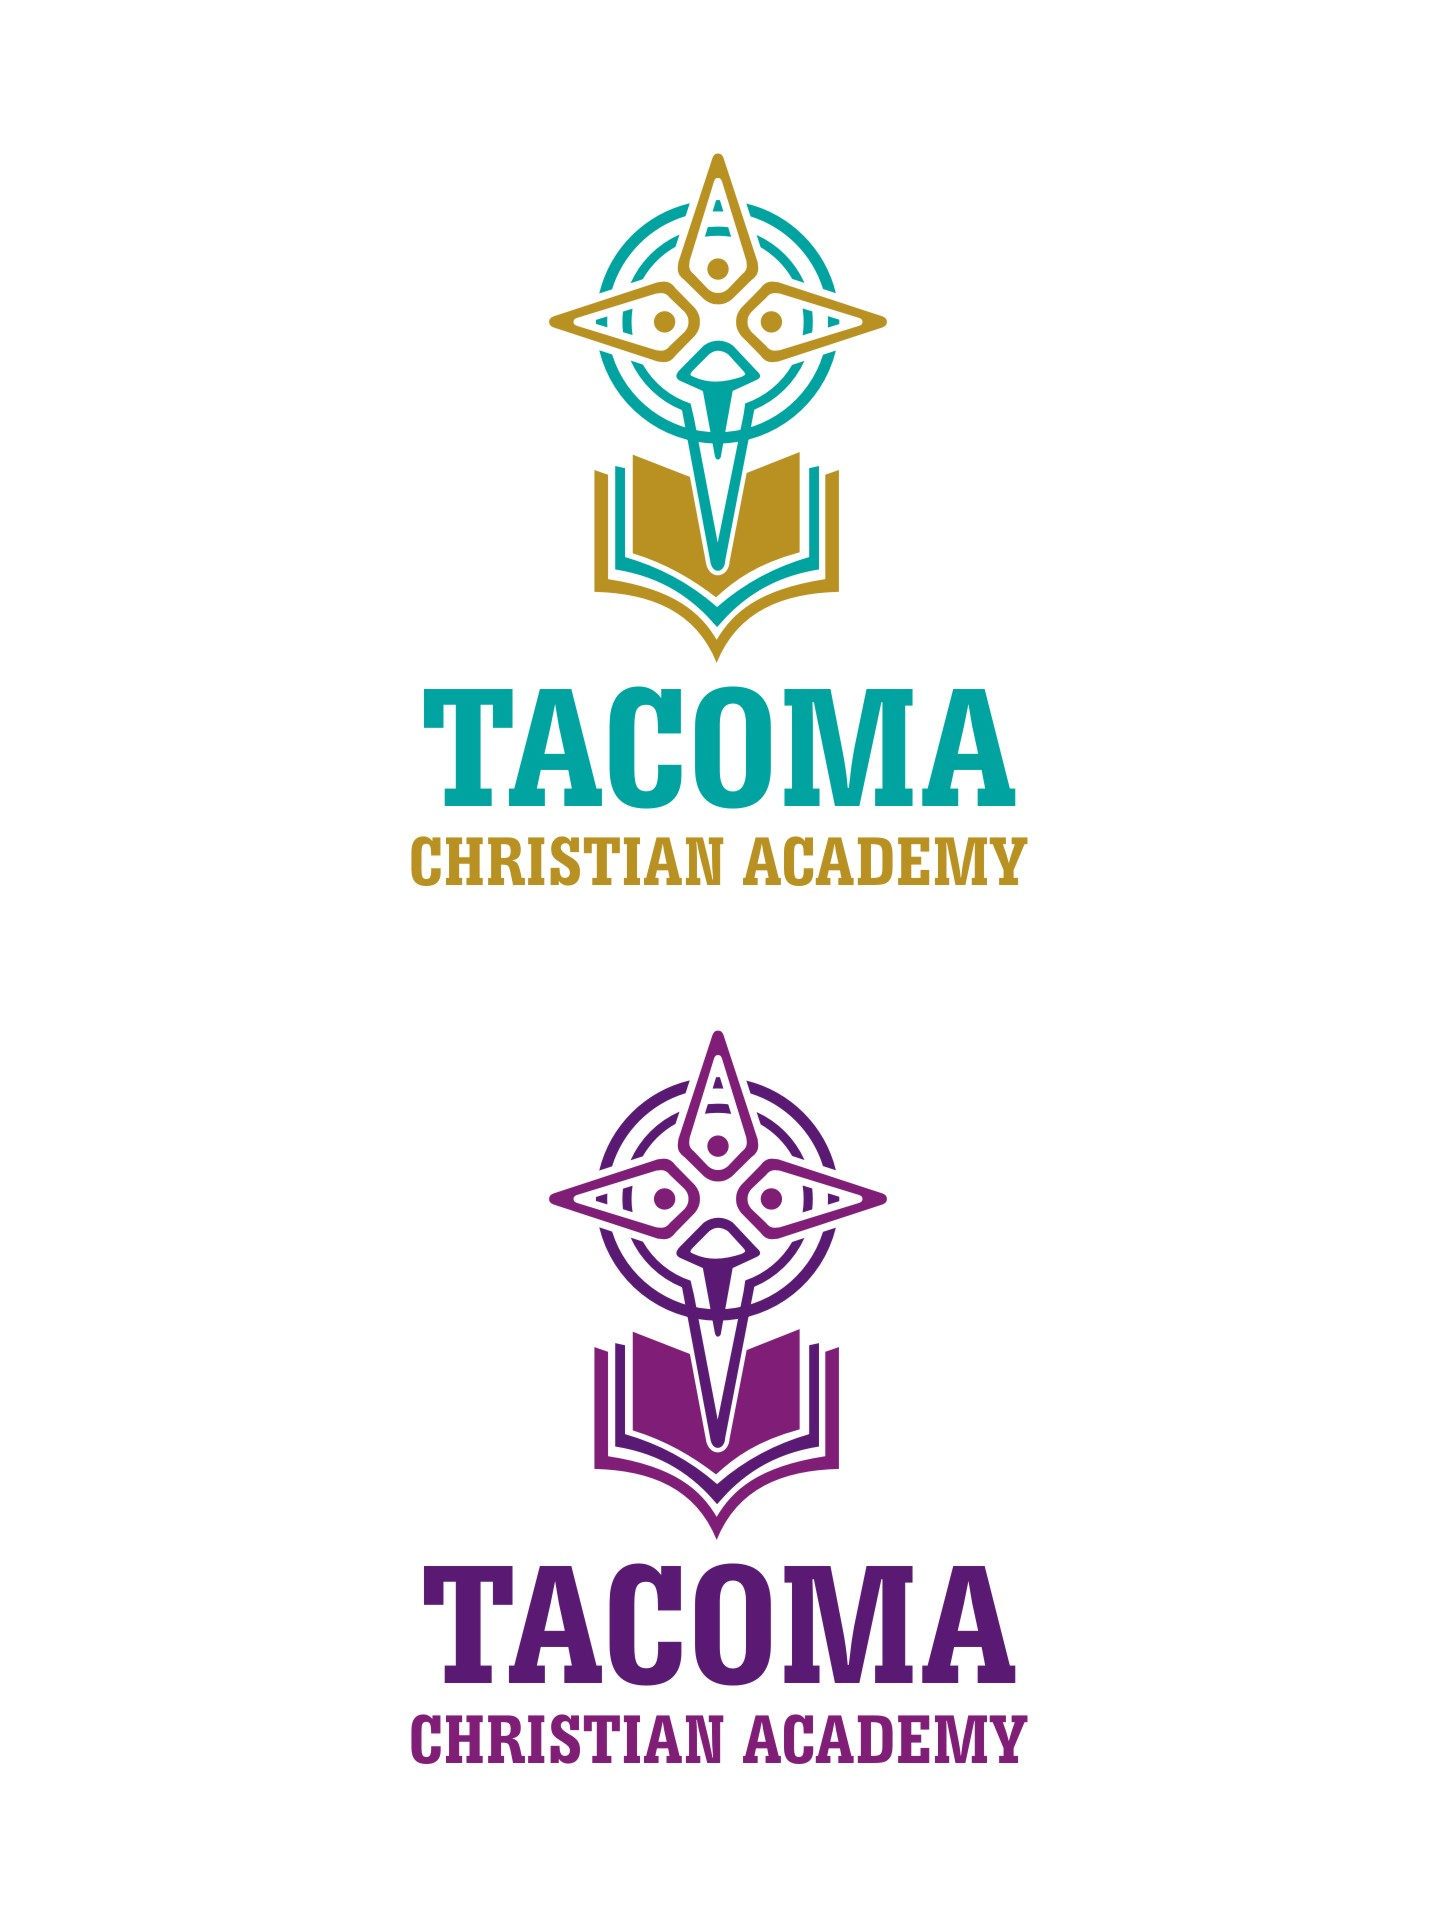 Logo Design by Spider Graphics - Entry No. 58 in the Logo Design Contest Imaginative Logo Design for Tacoma Christian Academy.